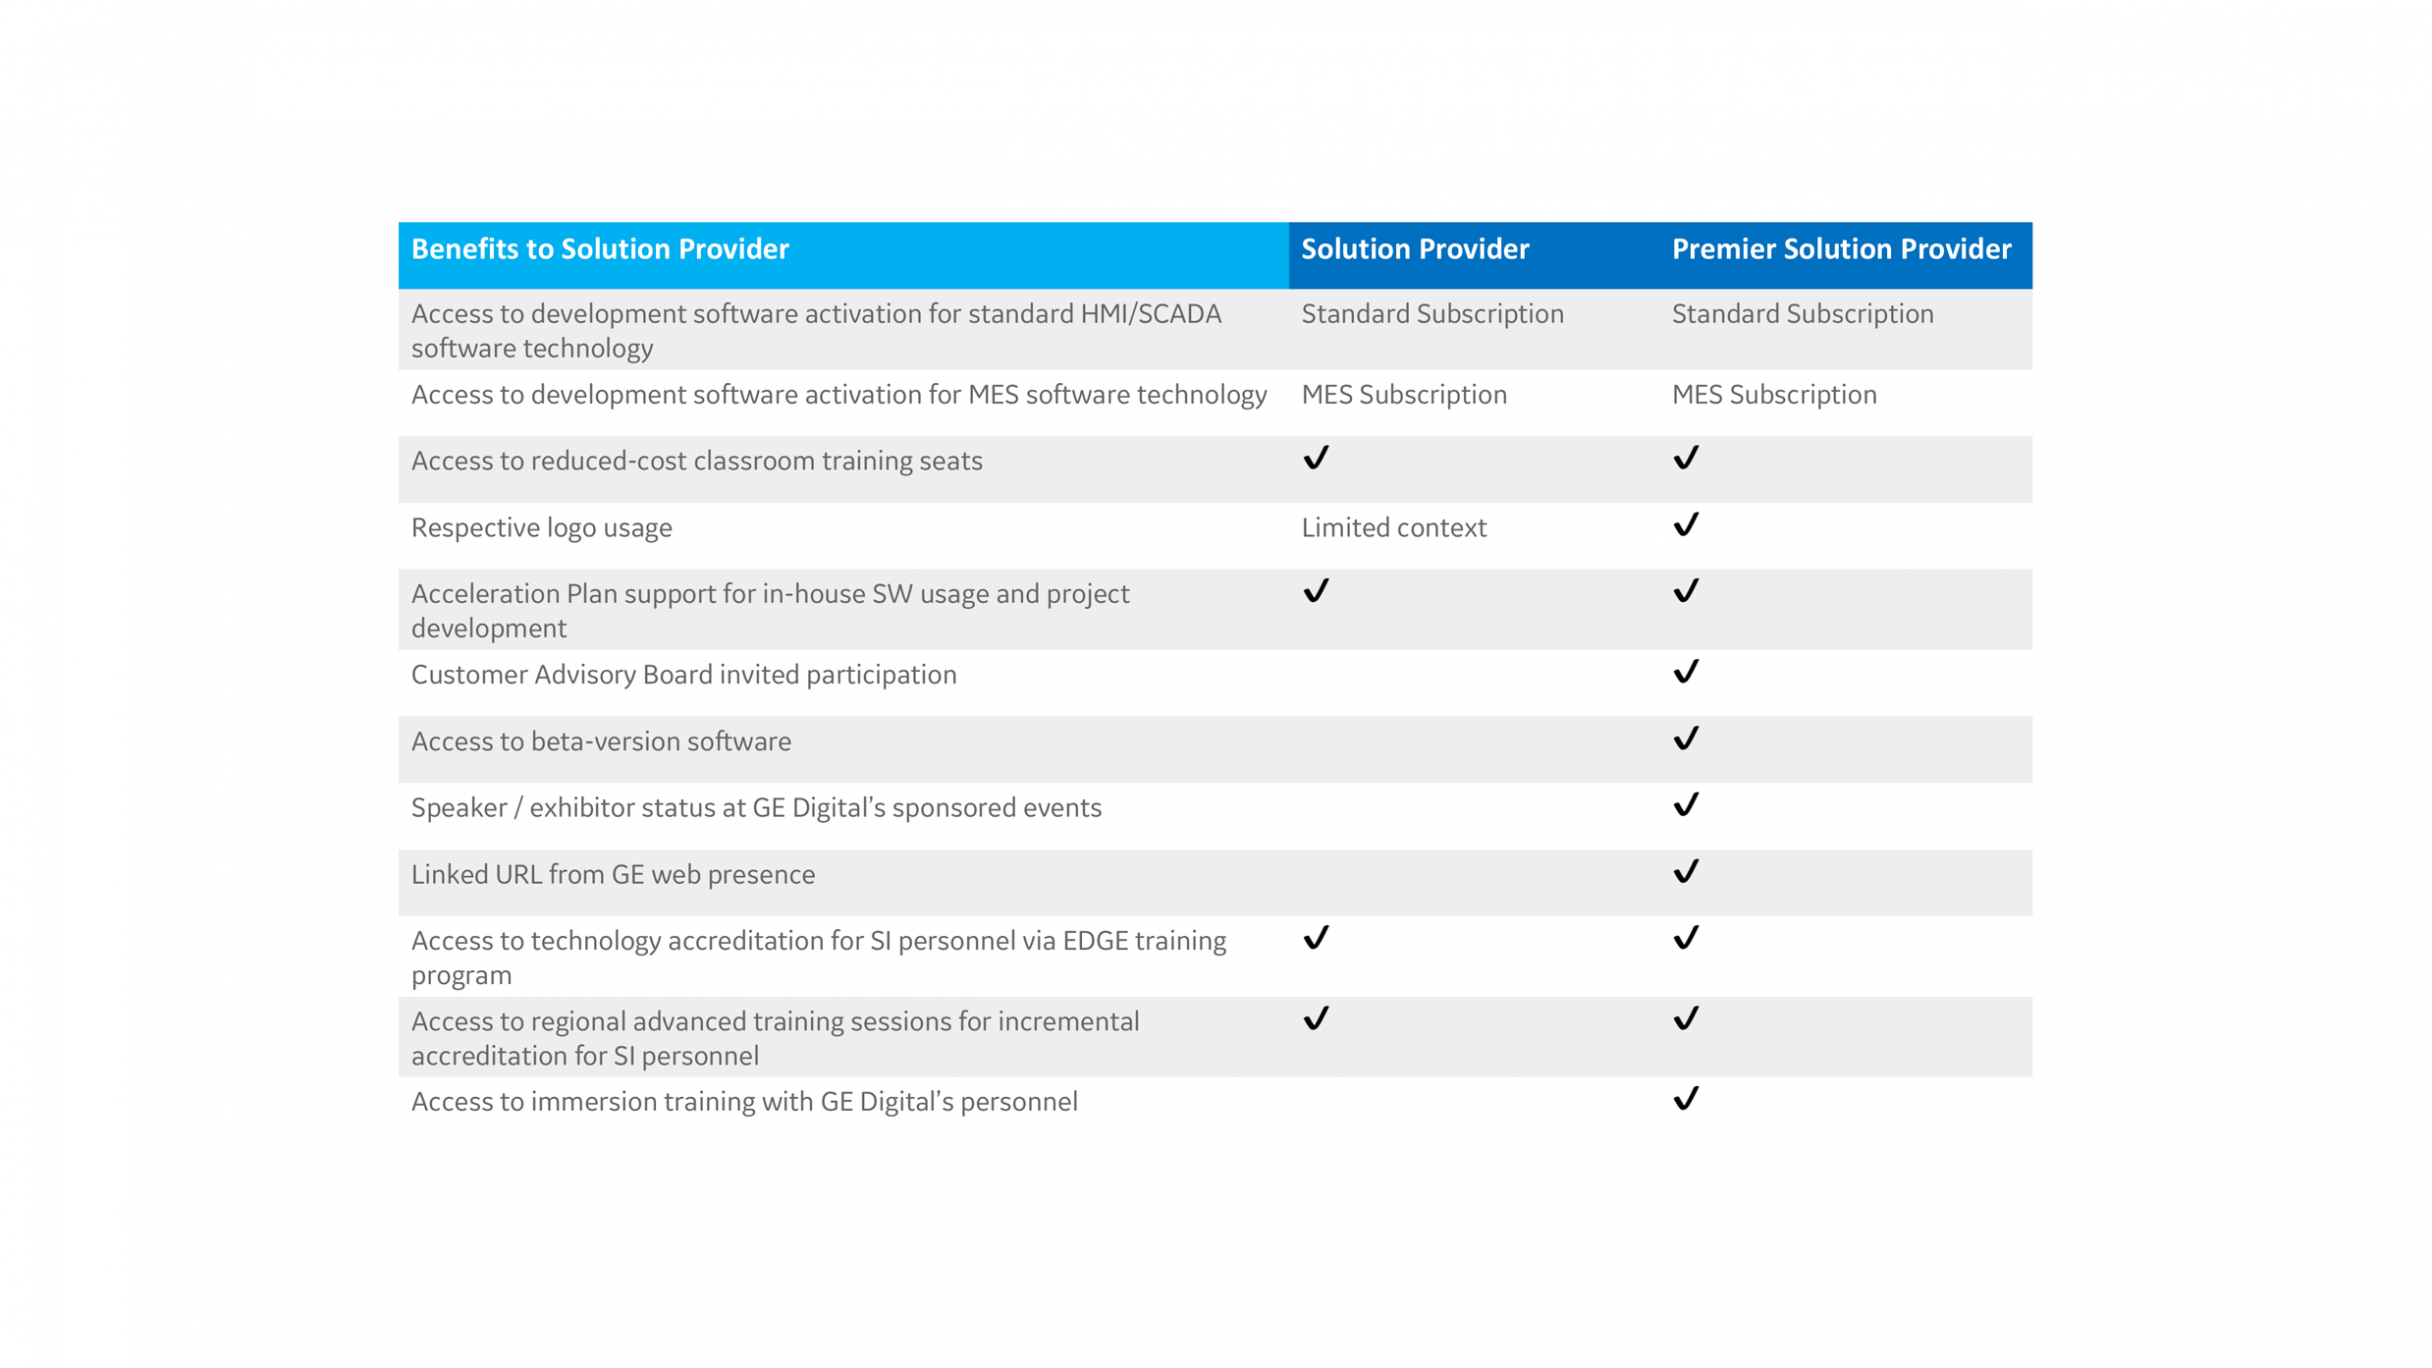 chart-solution-provider-benefits-2432x1368.png